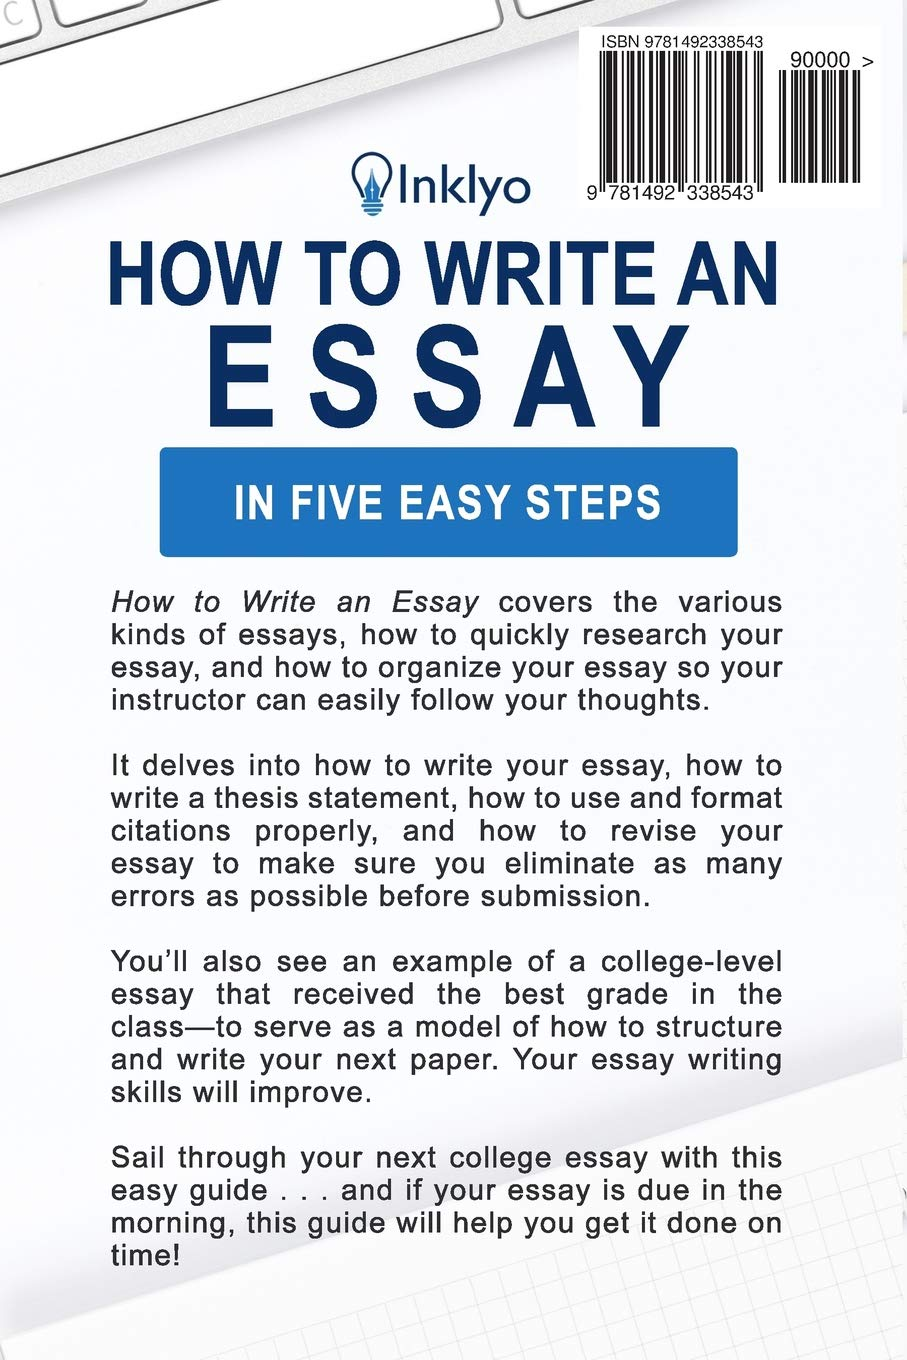 002 How To Write An Essay Example Shocking English Fast Title In Mla Format Conclusion Full